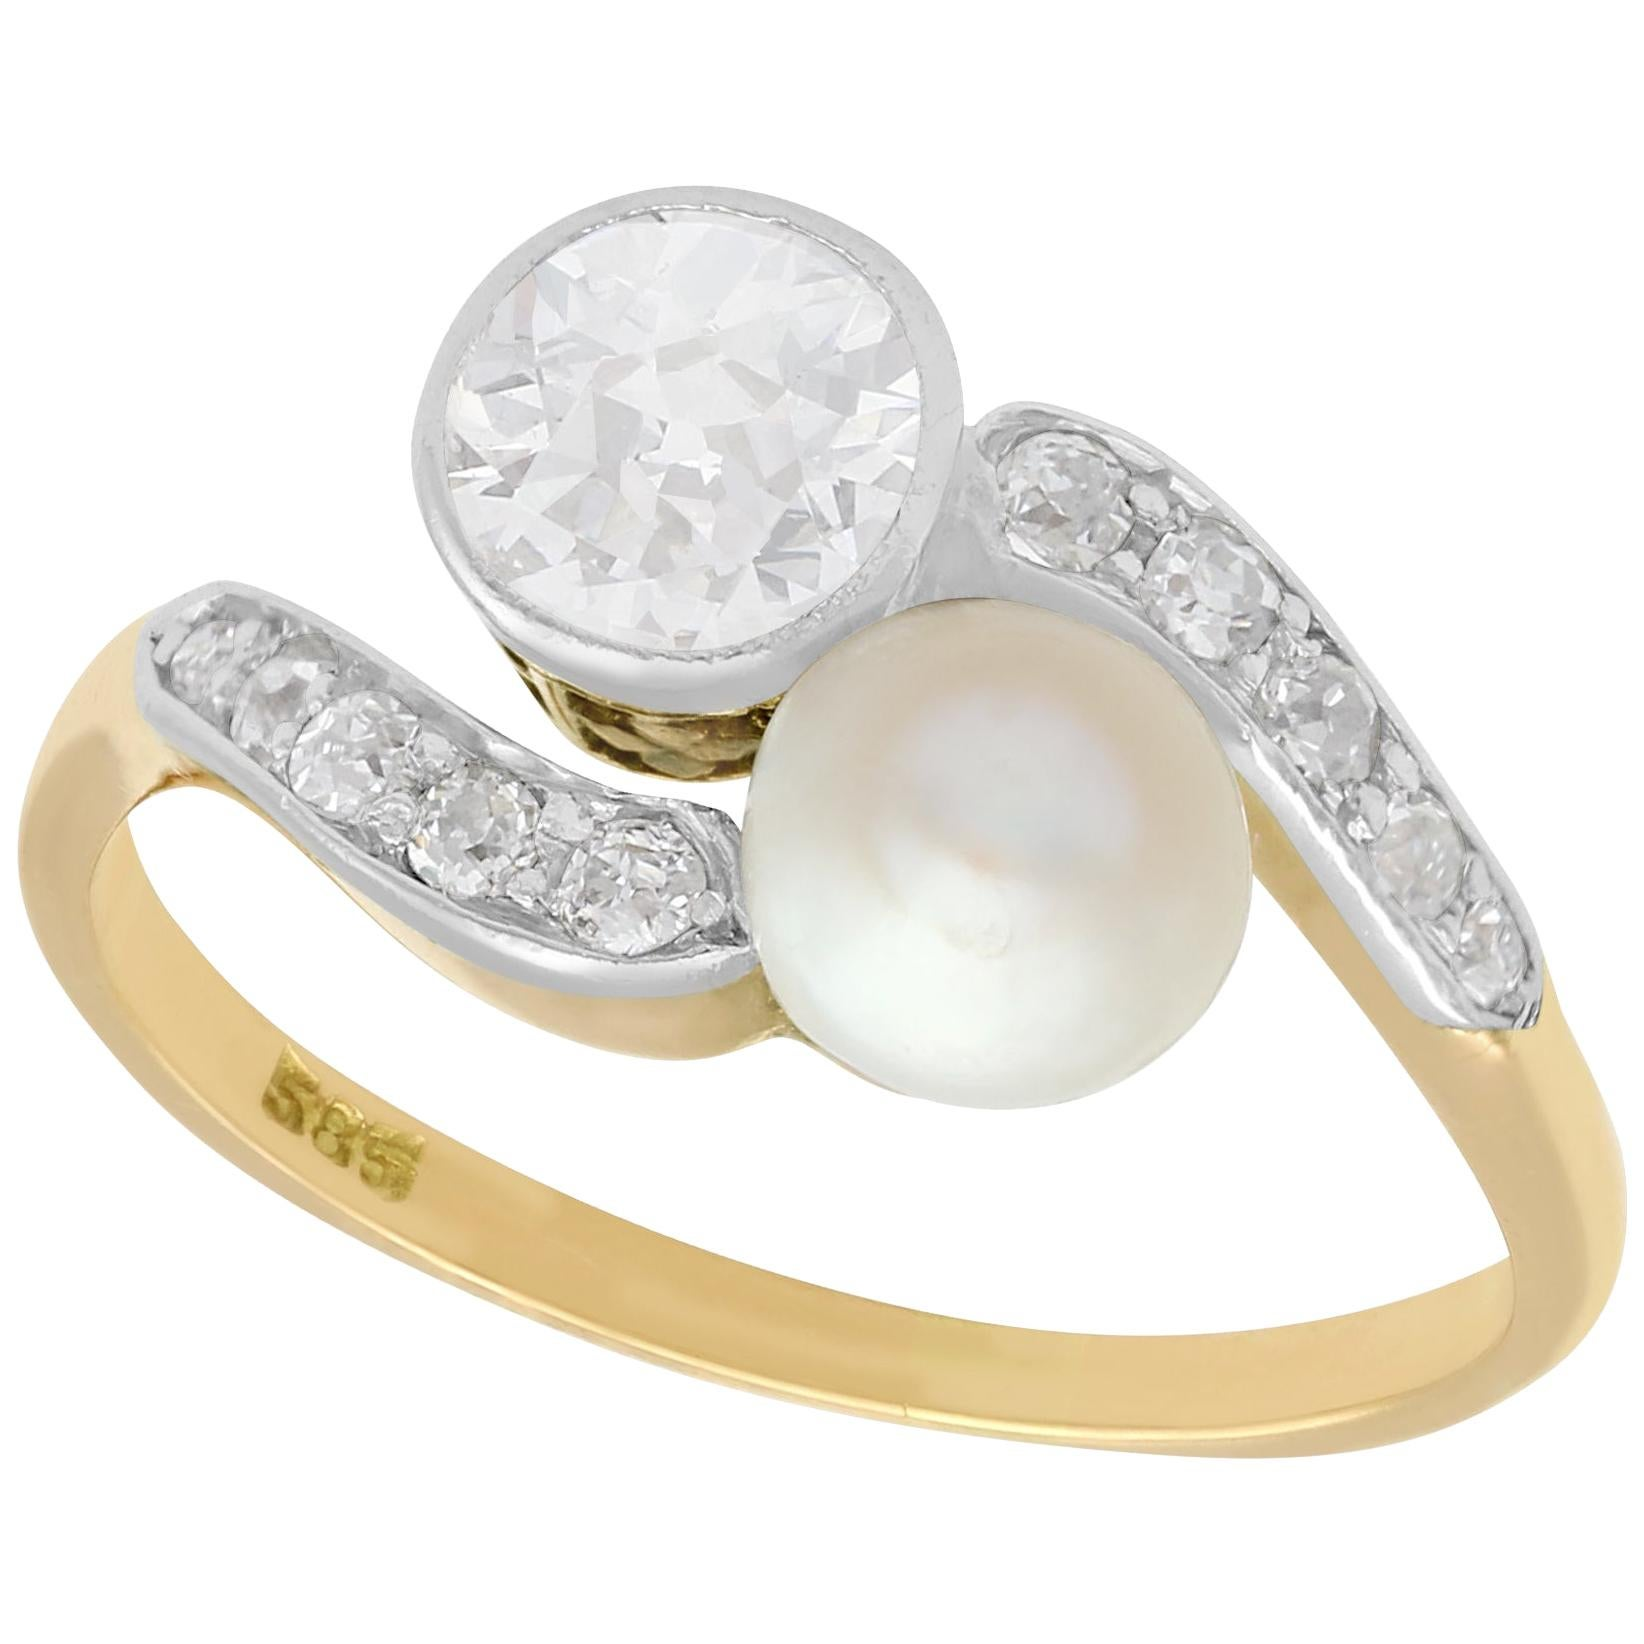 Antique Diamond and Natural Saltwater Pearl Yellow Gold Twist Ring, circa 1900